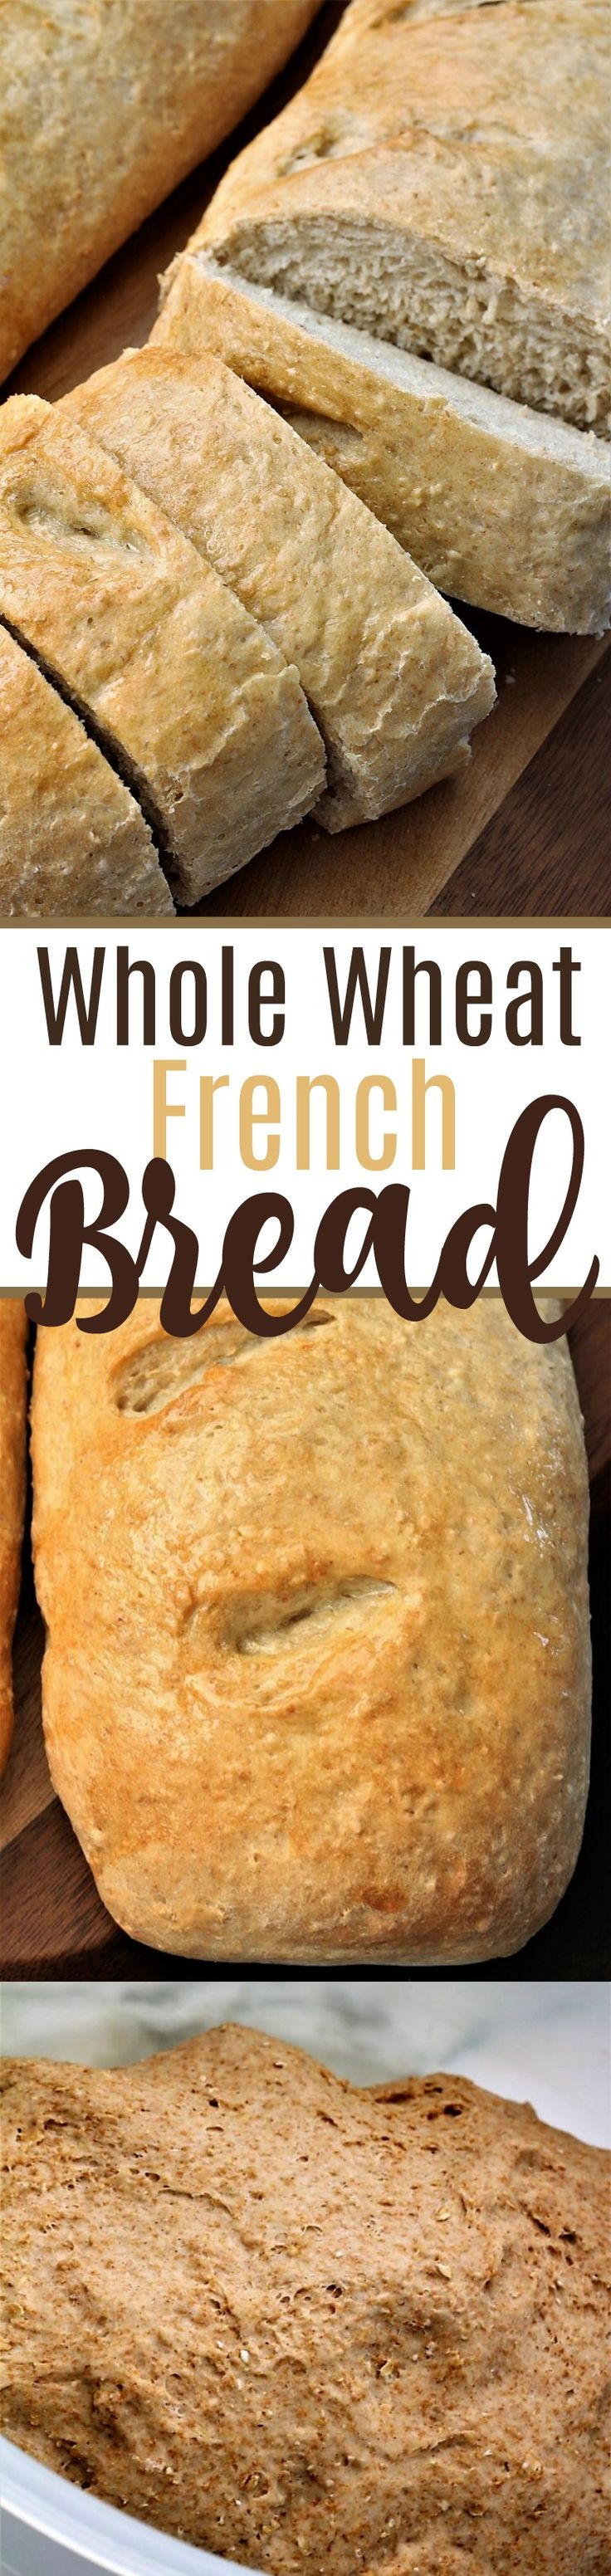 Whole Wheat French Bread, My Recipe Treasures Blog